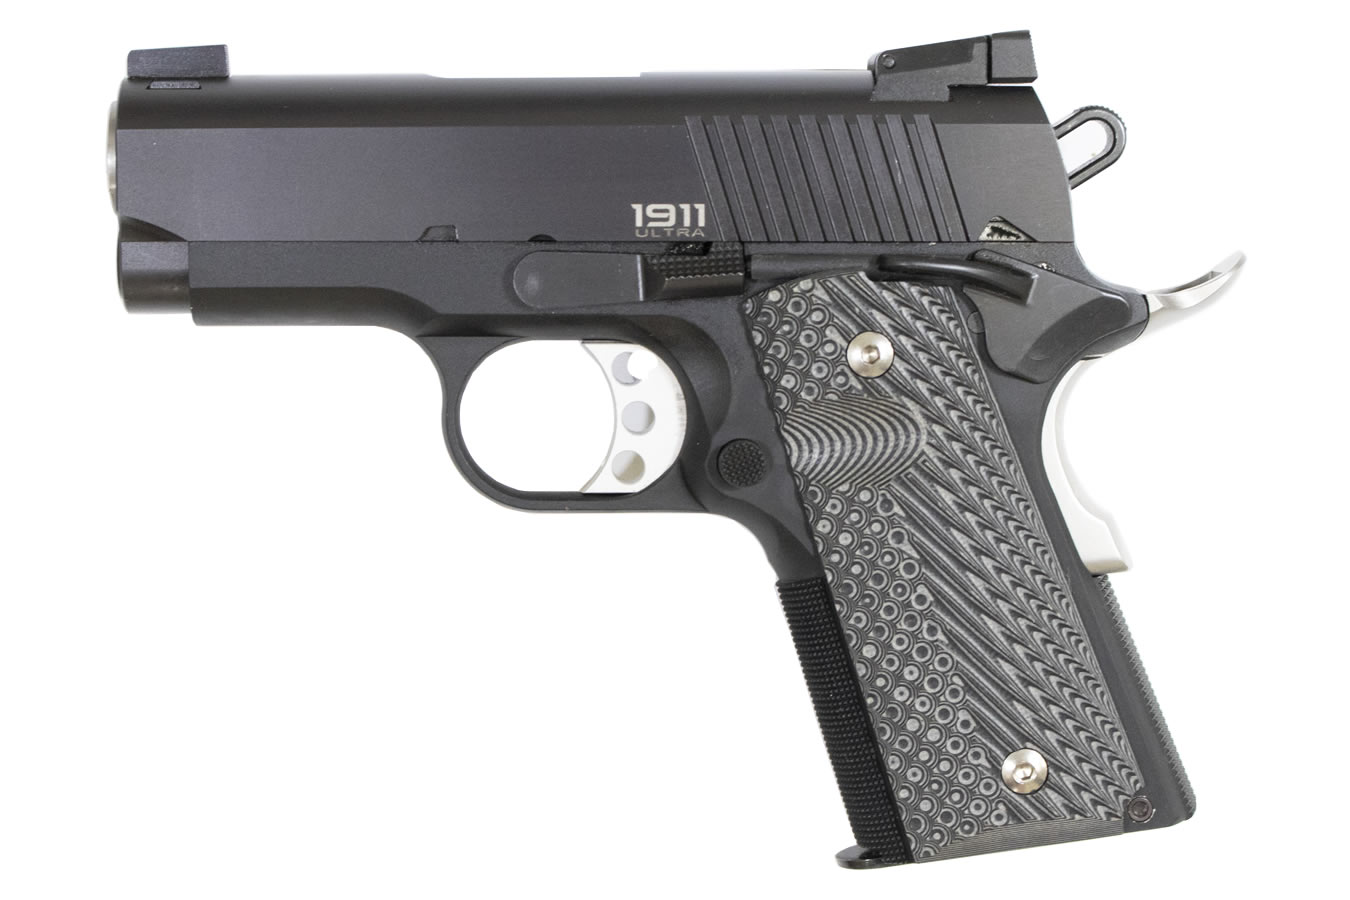 No. 18 Best Selling: BUL 1911 ULTRA 9MM BLACK COMPACT PISTOL